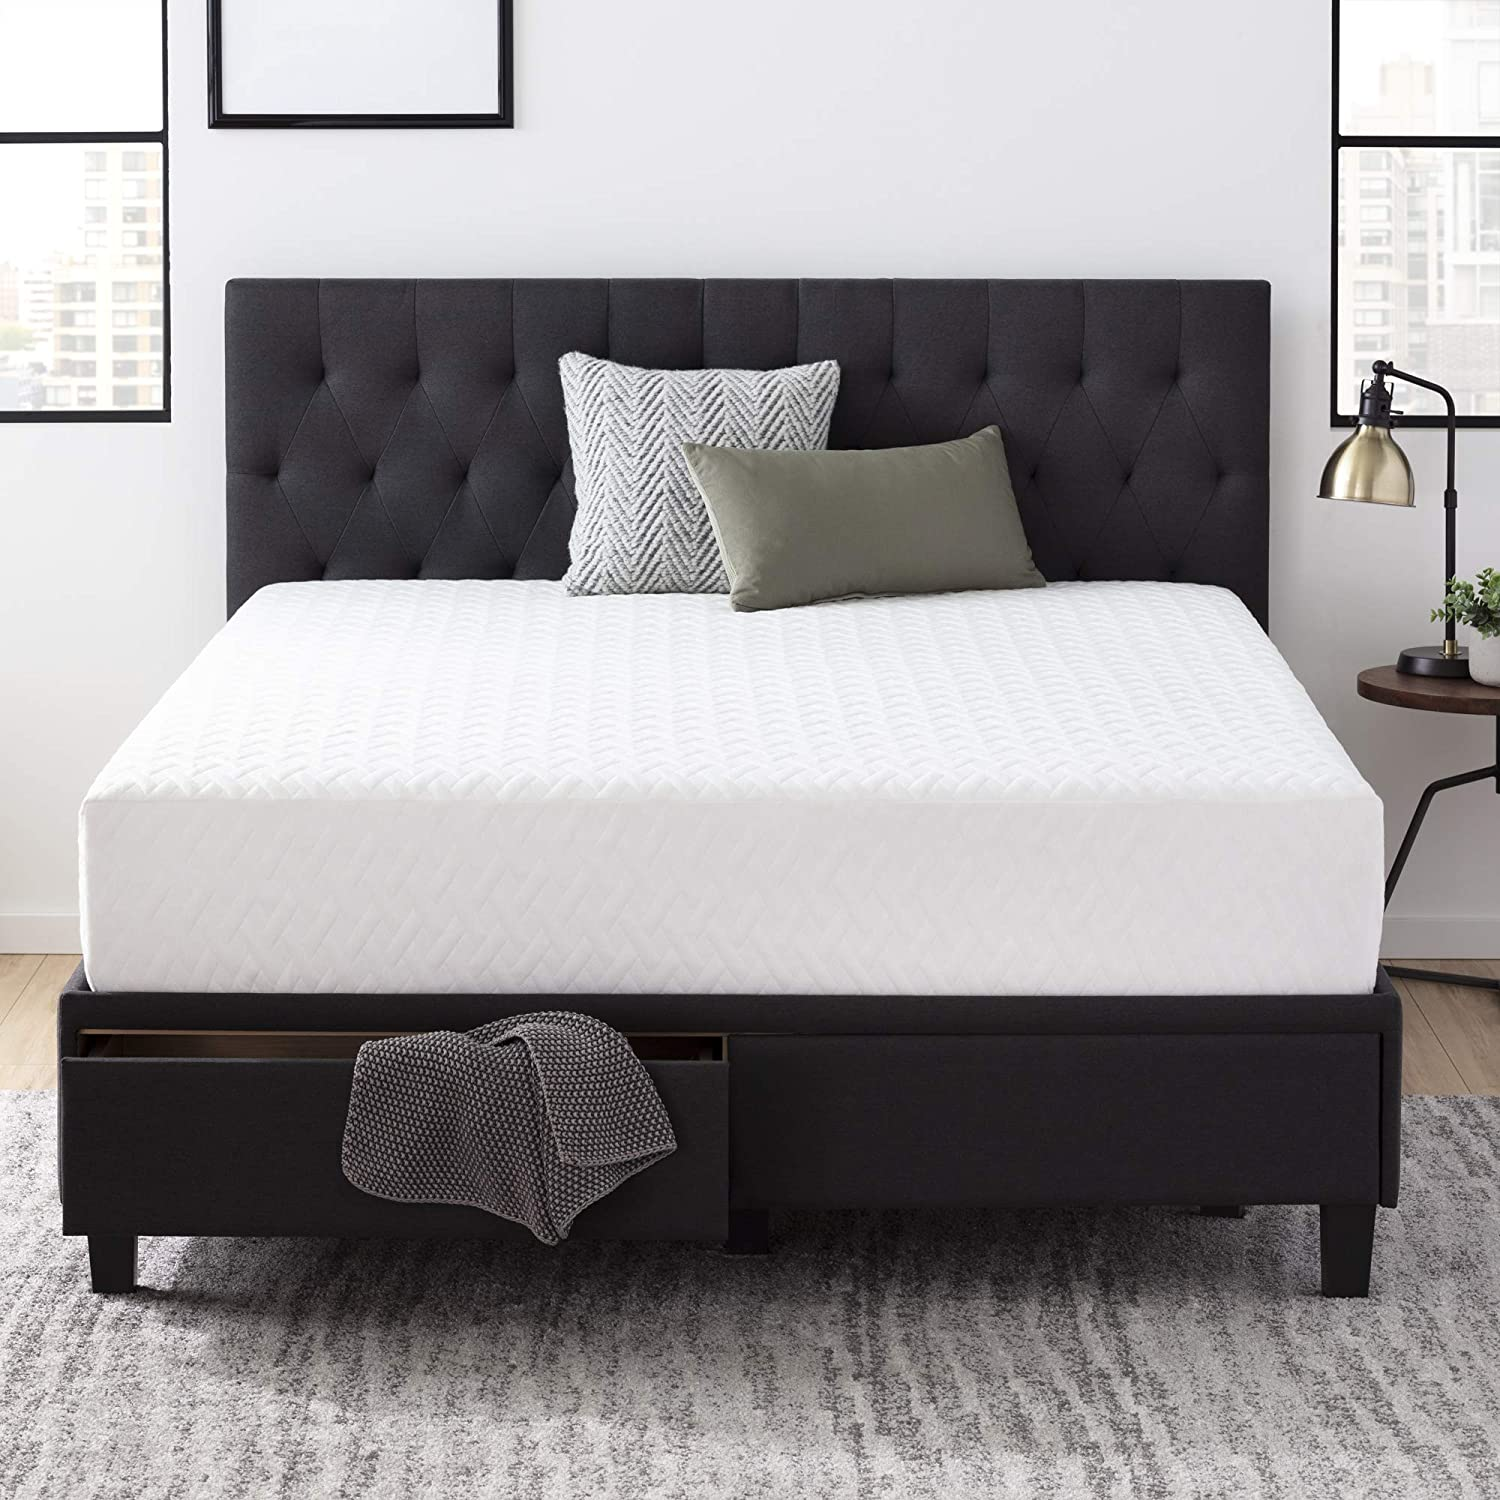 Everlane Home Windsor Upholstered Bed with Built-in Drawers - Slate - King & Everlane Home 10 Inch Gel Infused Memory Foam Mattress - King